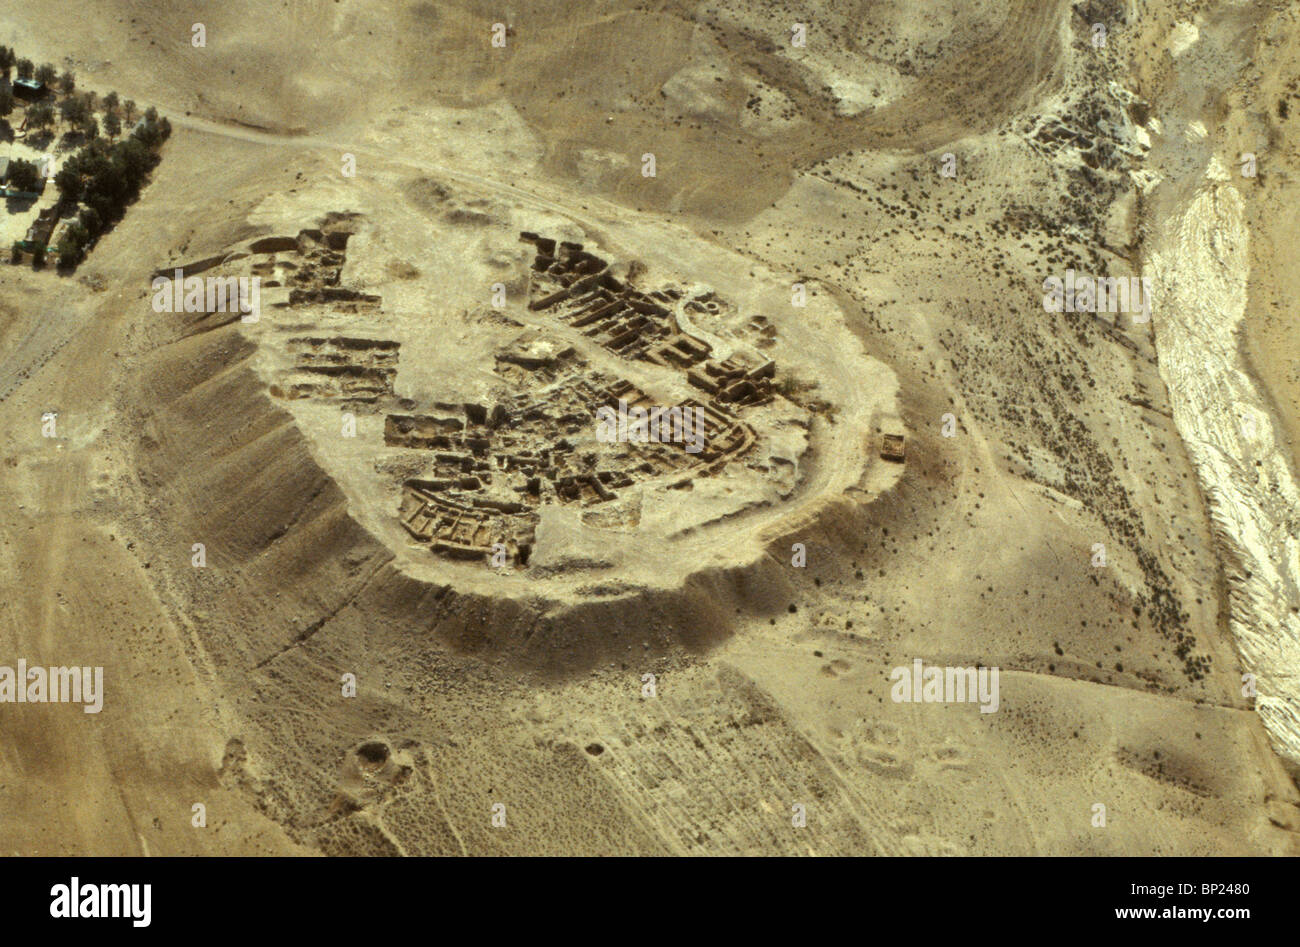 tel beersheba aerial view of the ancient city mentioned in the